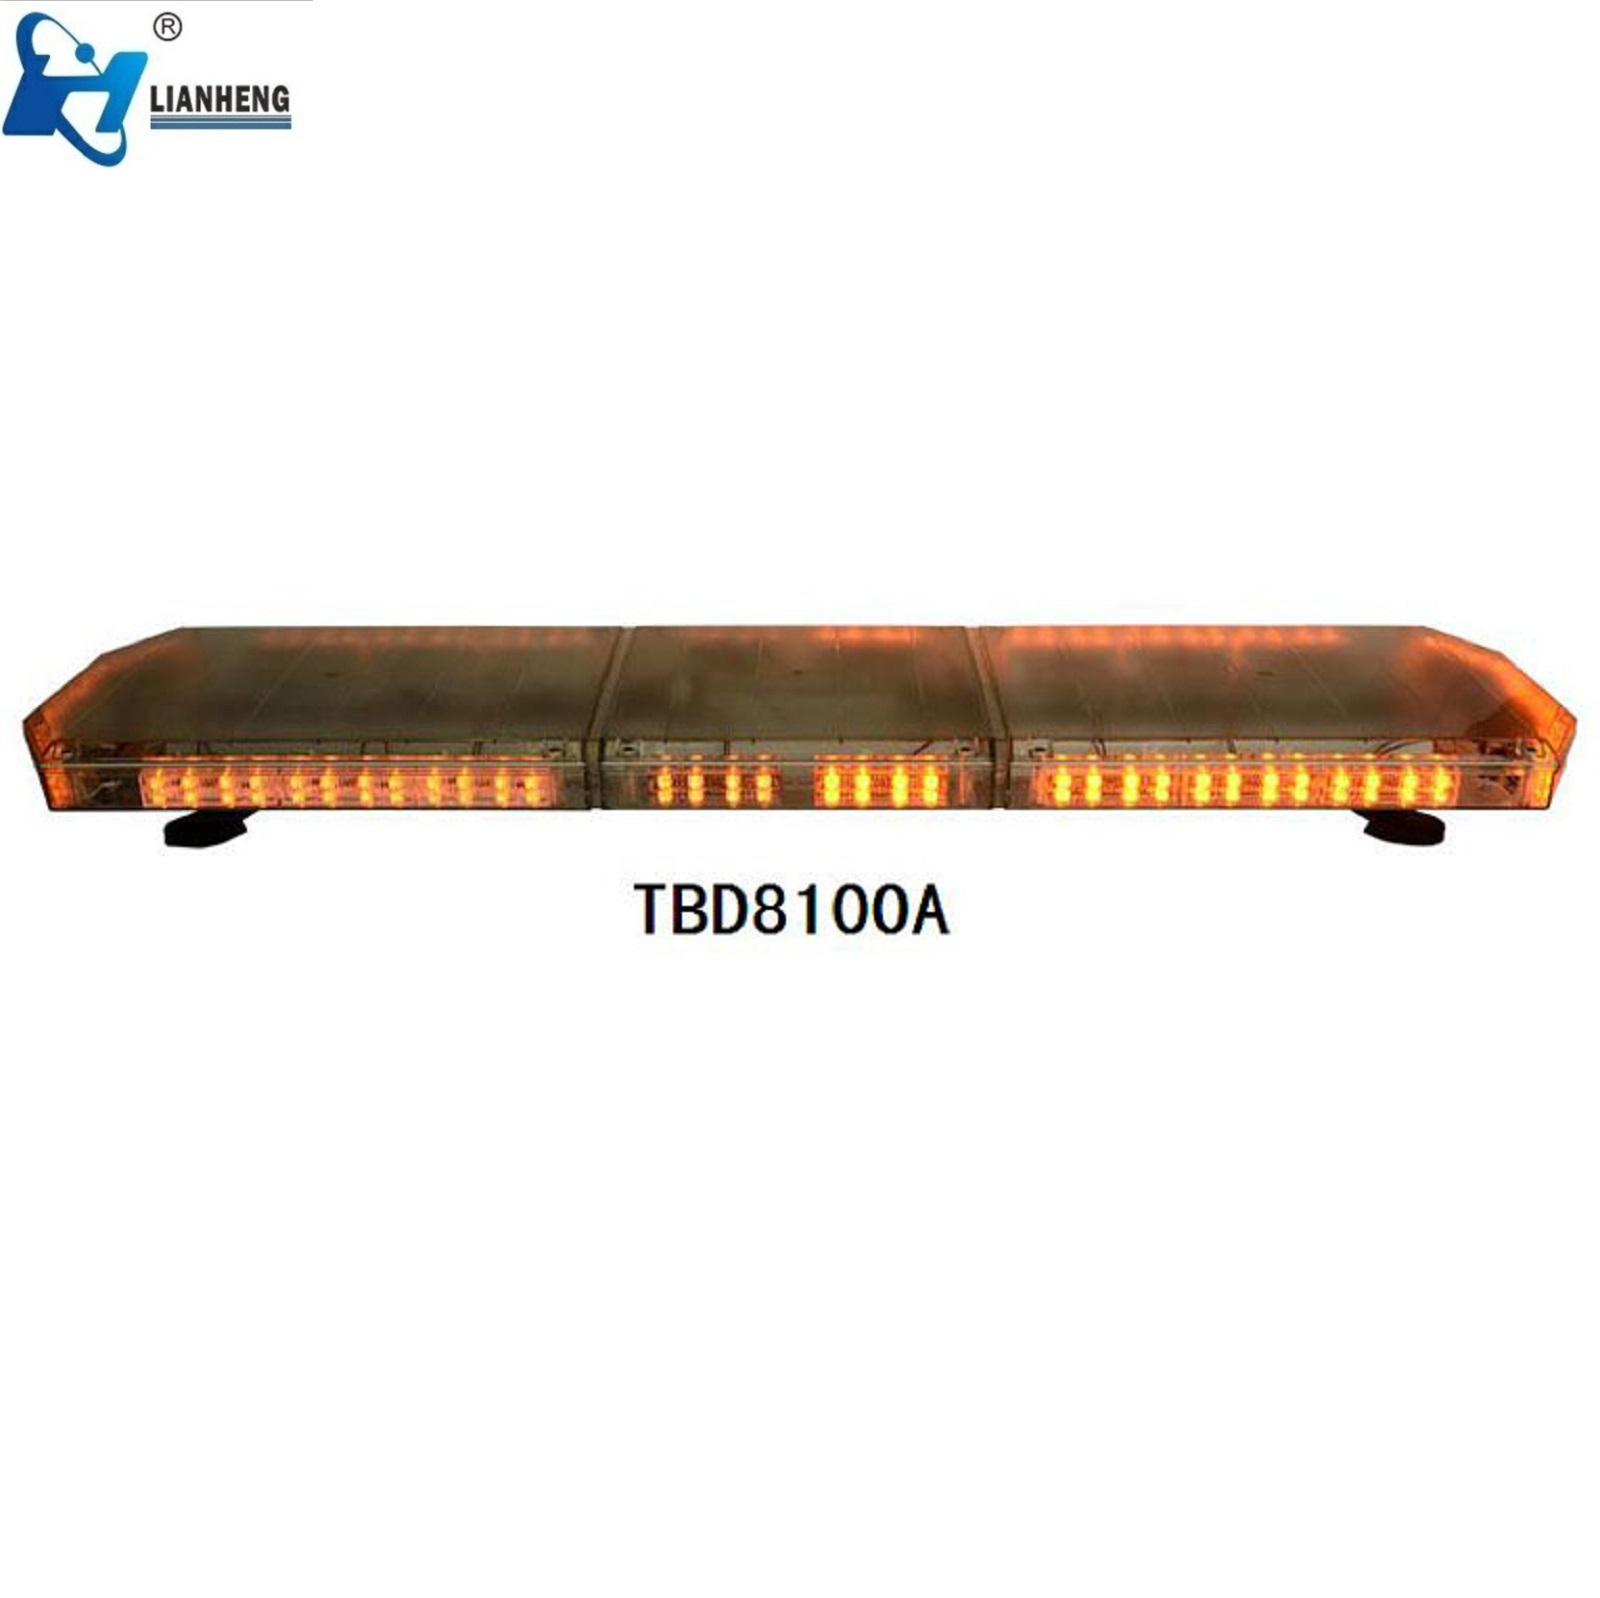 LED Super Bright Light Bar Roof Mounted Emergency Hazard Warning Flash Strobe LED Light Bar